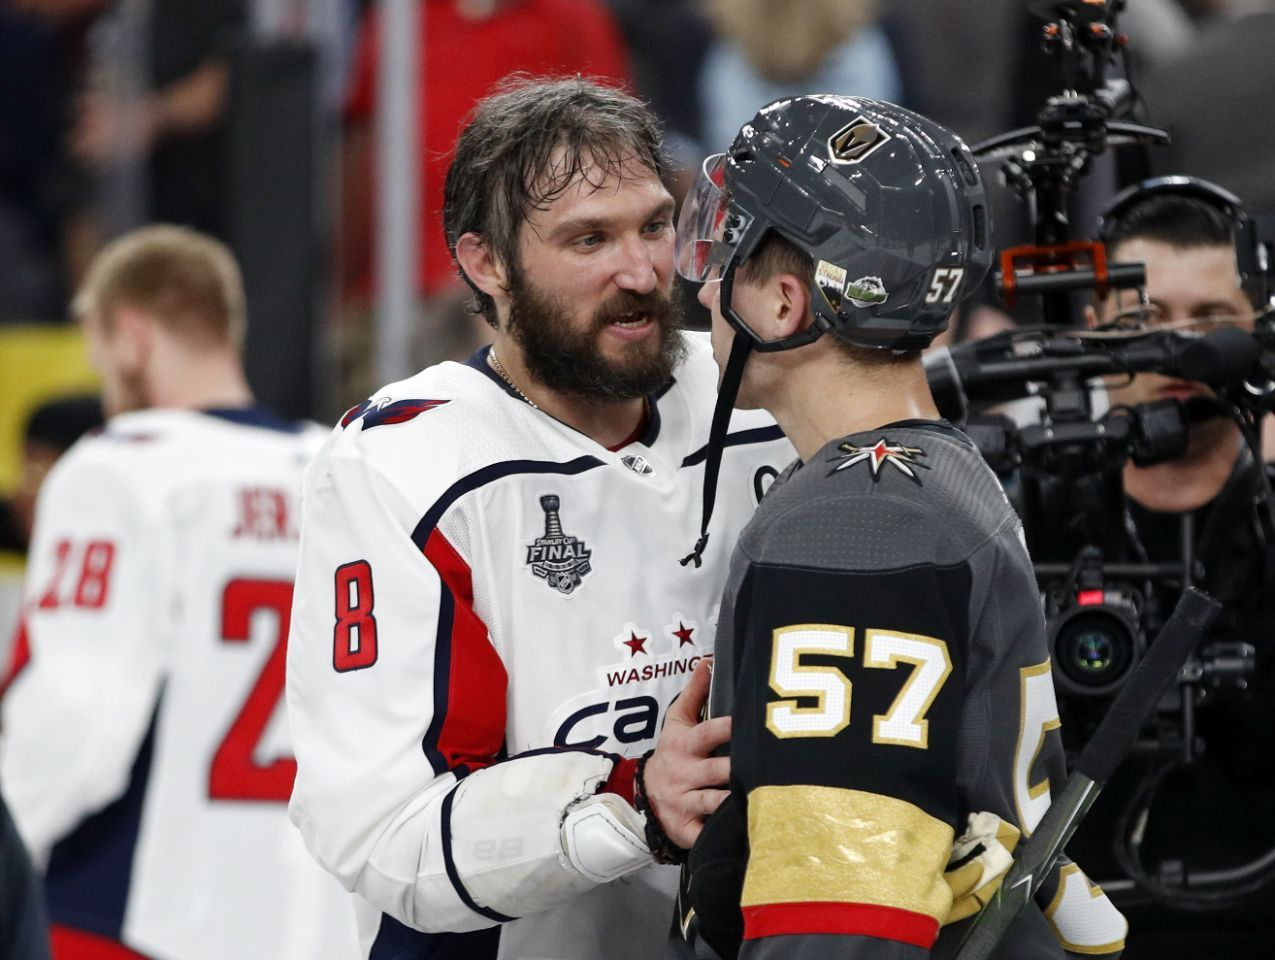 Stanley Cup winner Alex Ovechkin may just be getting